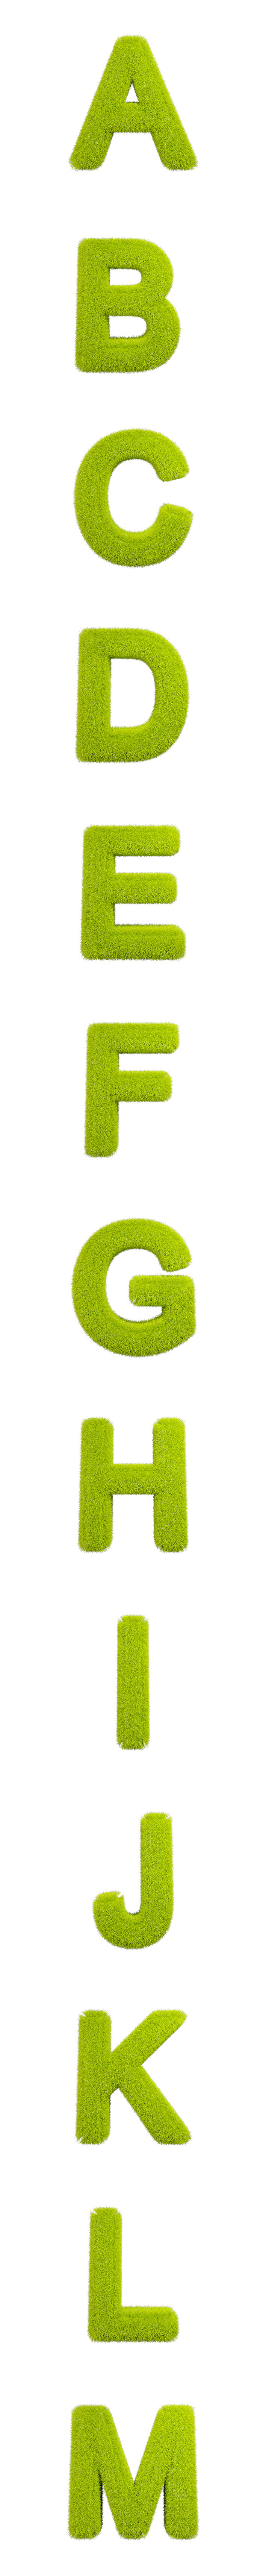 Full Grass Alphabet Isolated Letters-1